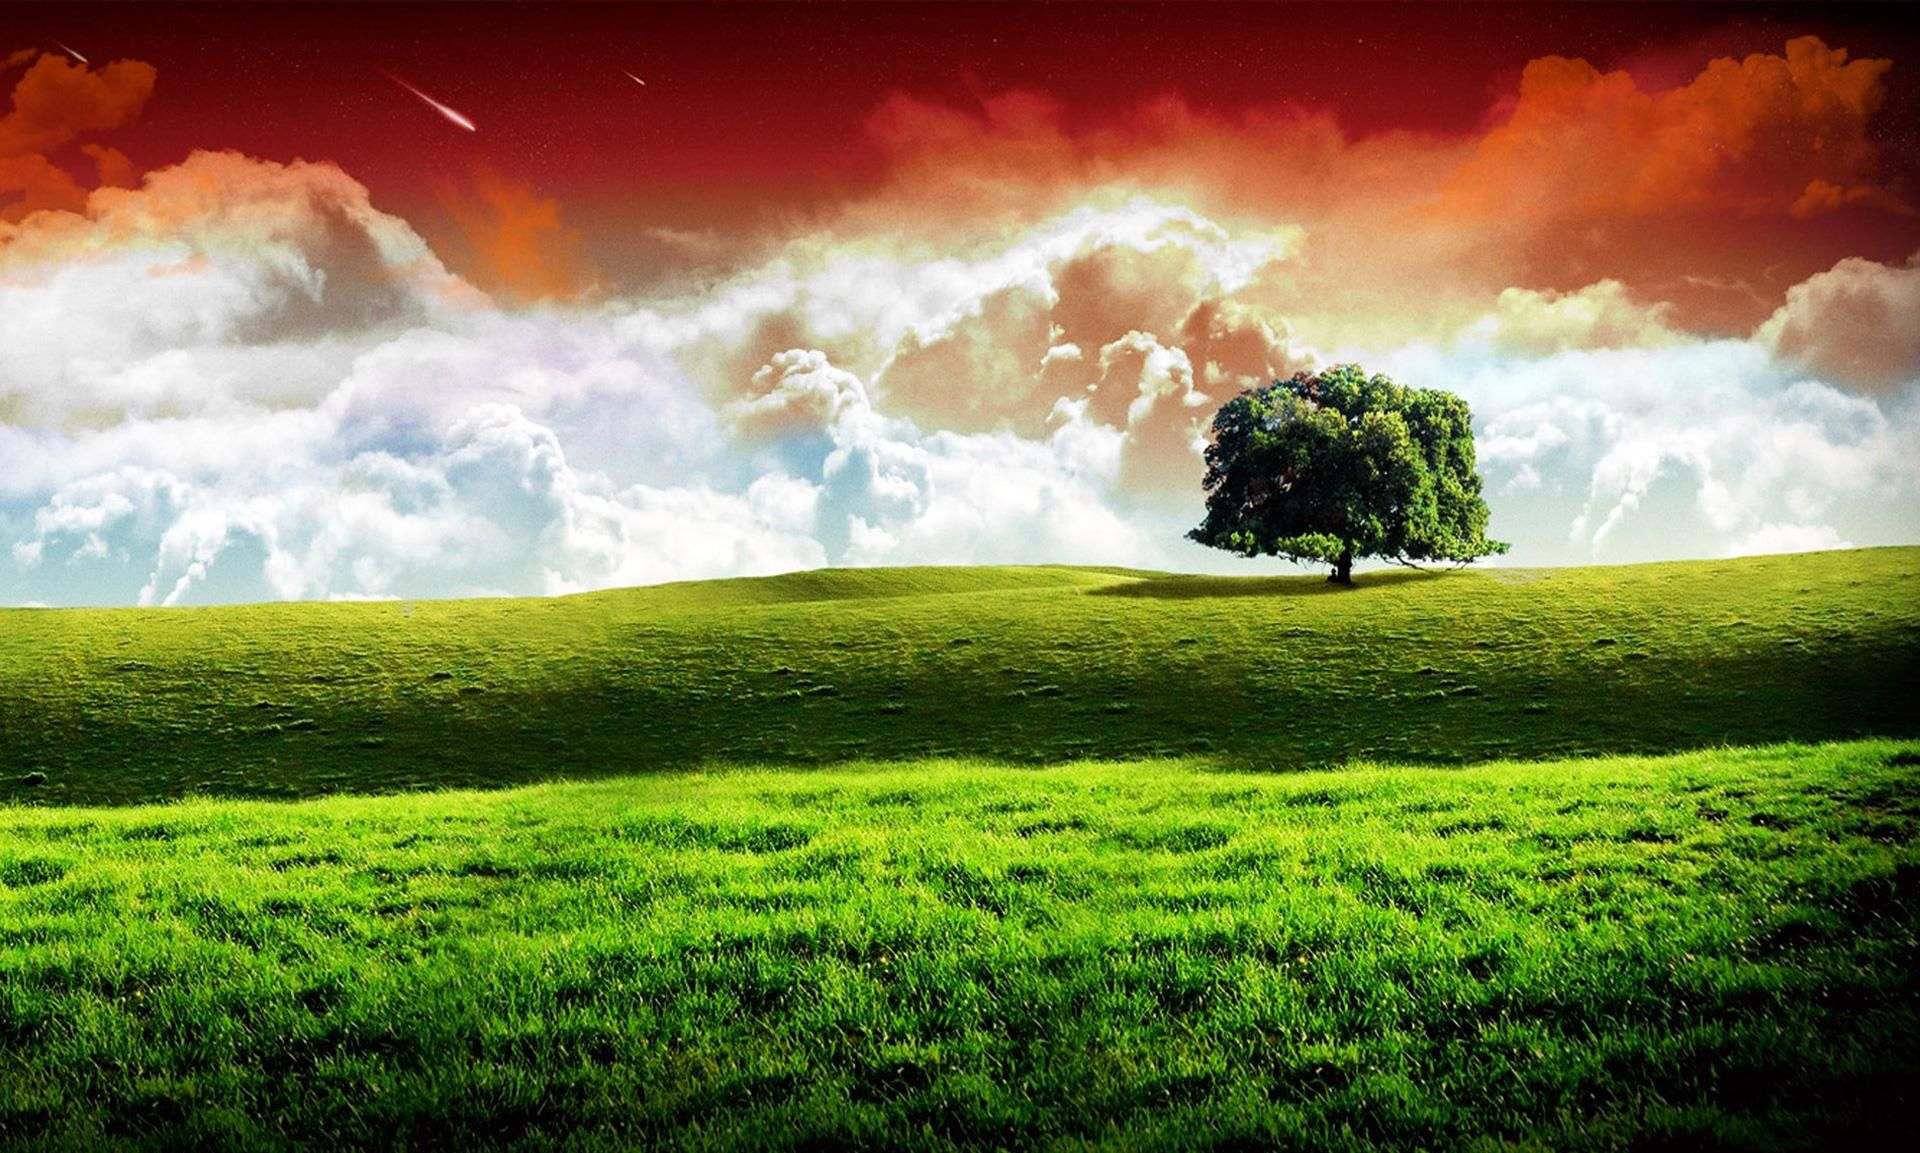 Happy 72th Independence Day Of India Hd Wallpapers With Quotes Let Us Publish Scenery Wallpaper Beautiful Nature Scenes Nature Wallpaper